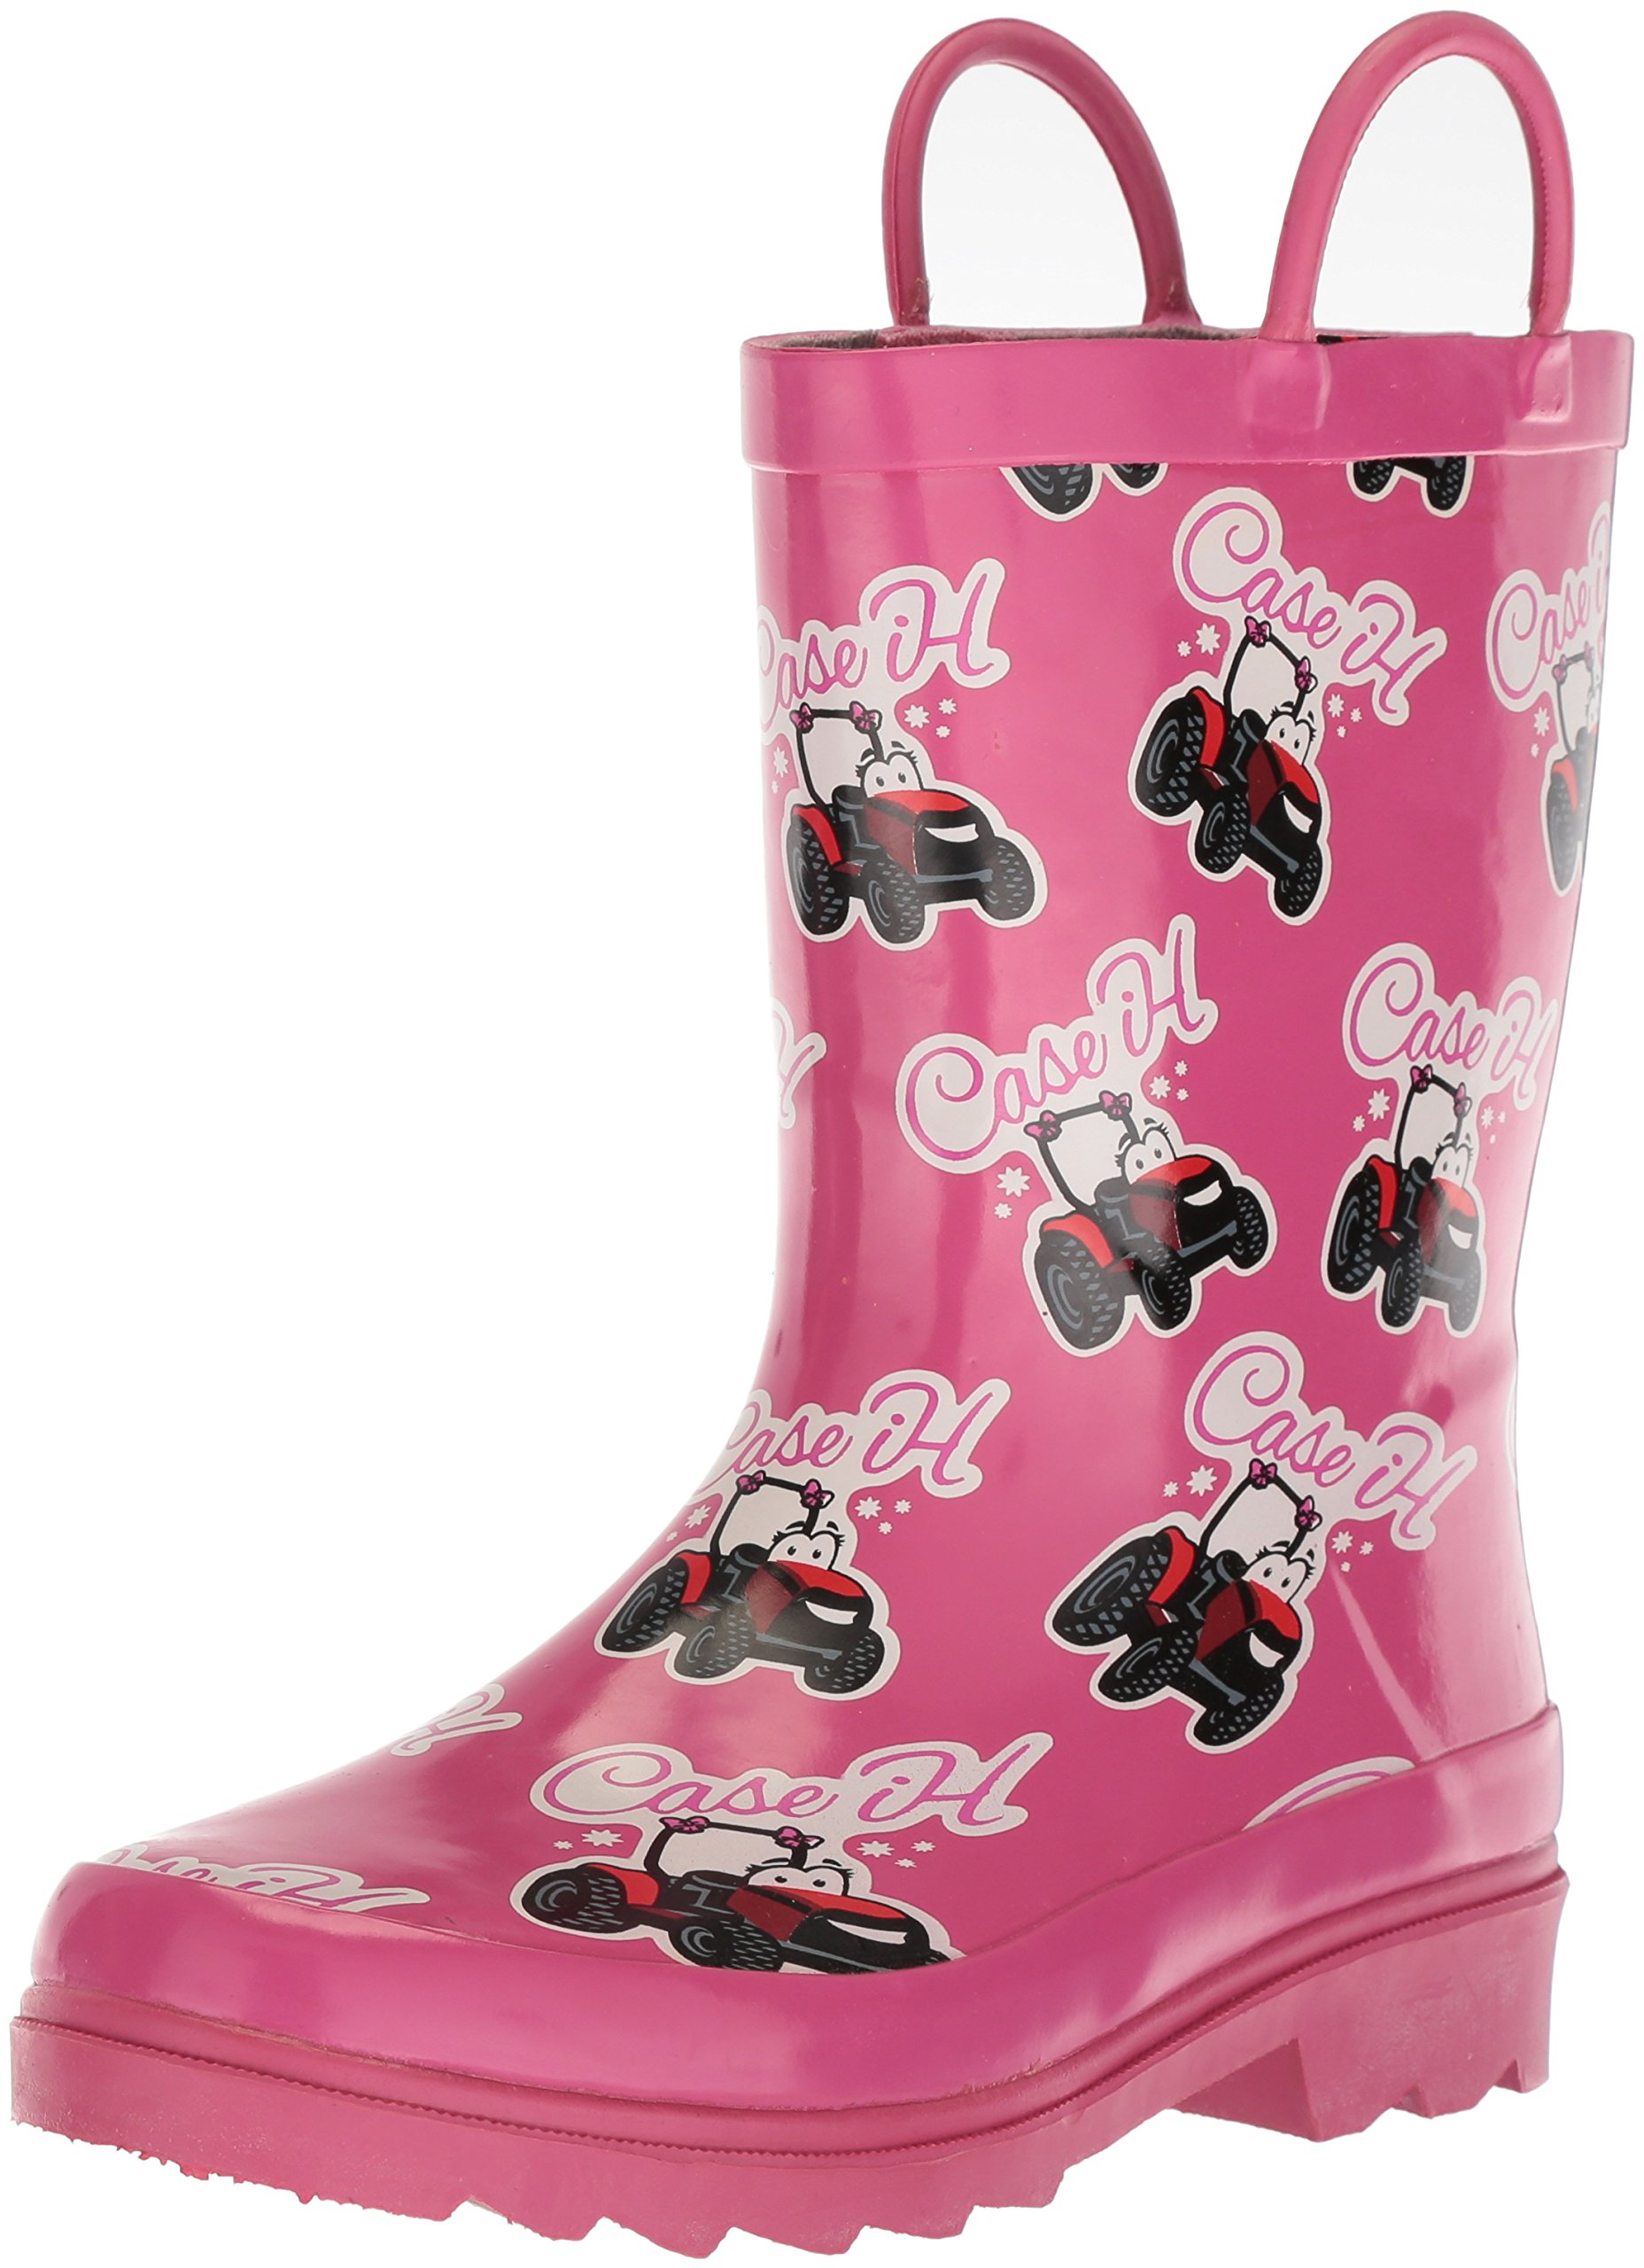 AdTec Kids Waterproof Rubber Easy-On Handle's CI-4002 Rain Boot, Pink, 12 M US